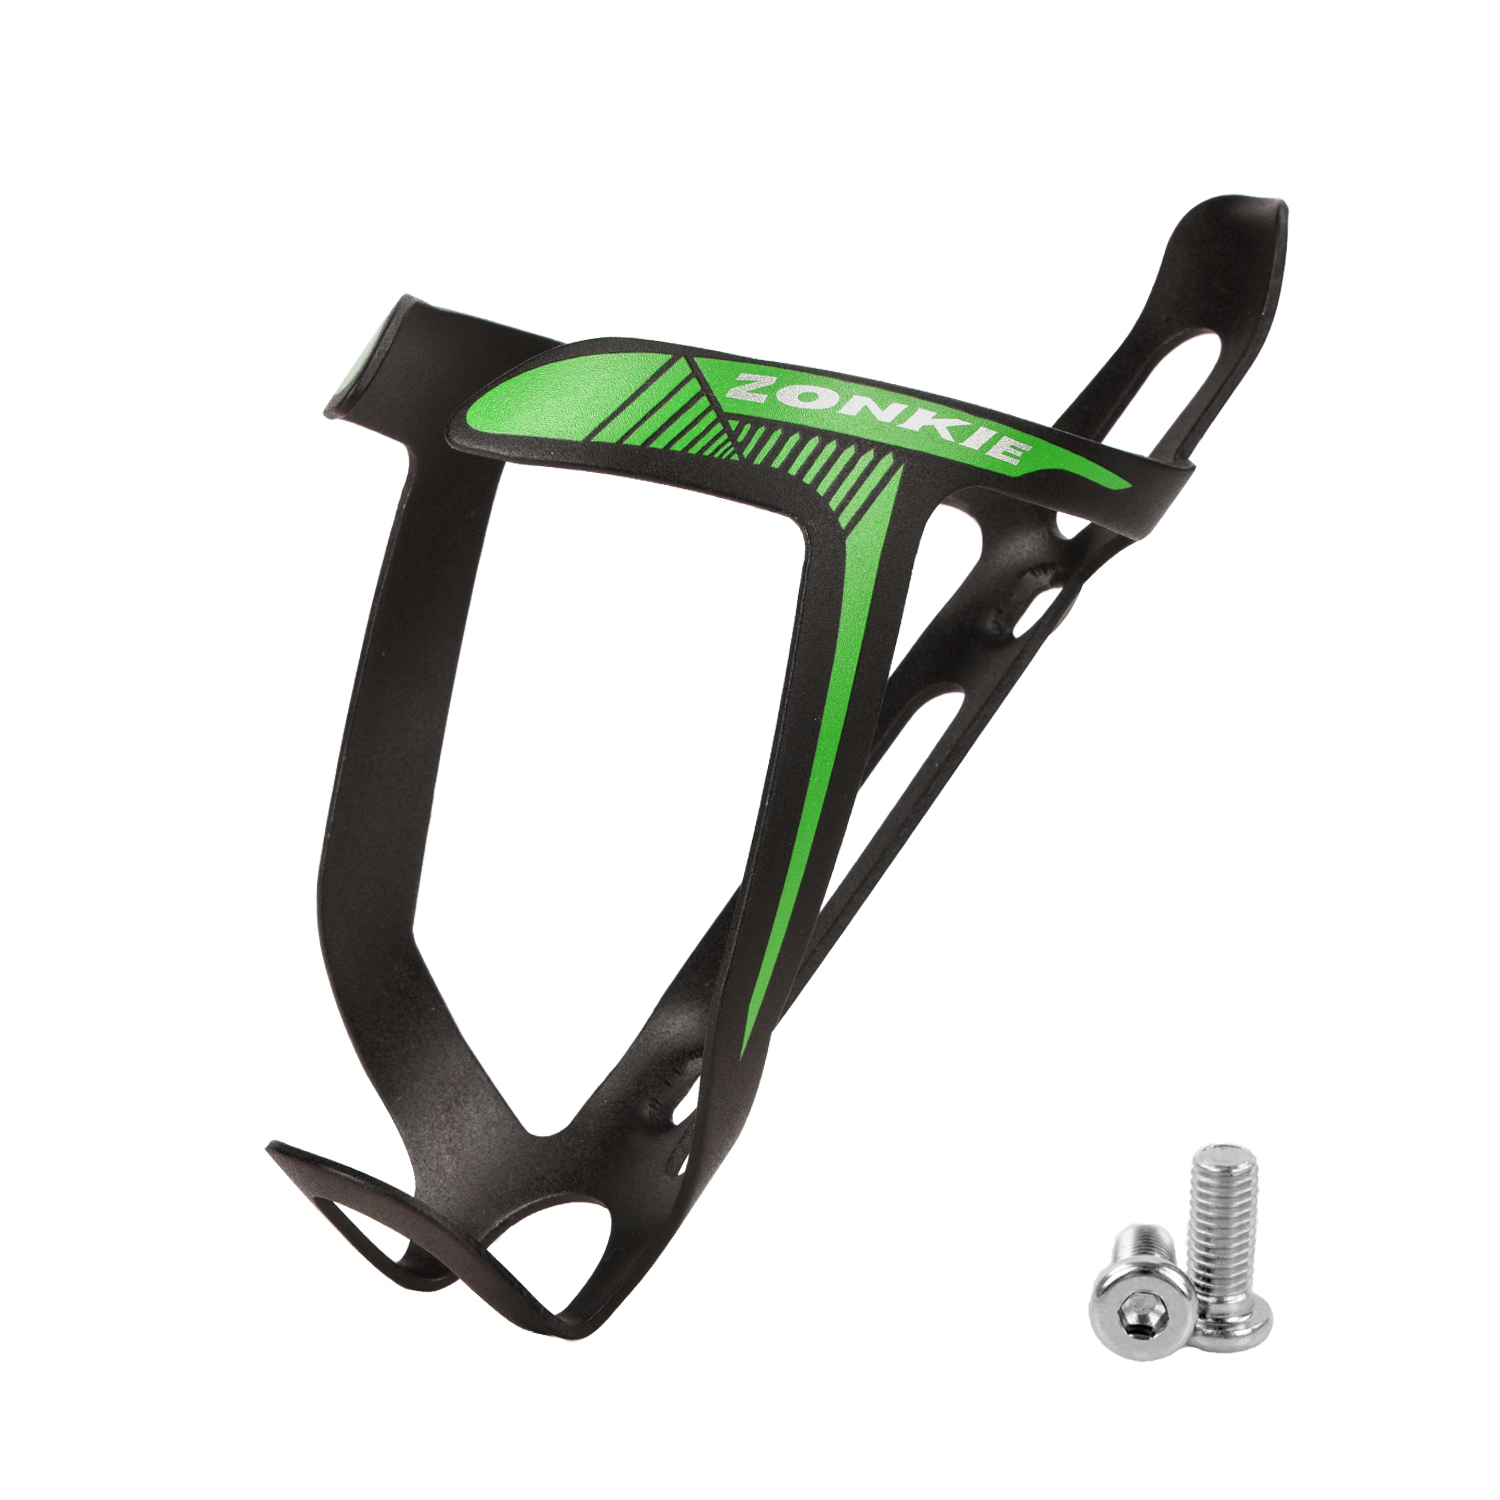 ZK-016LV Bike Bottle Cages Aluminum Alloy